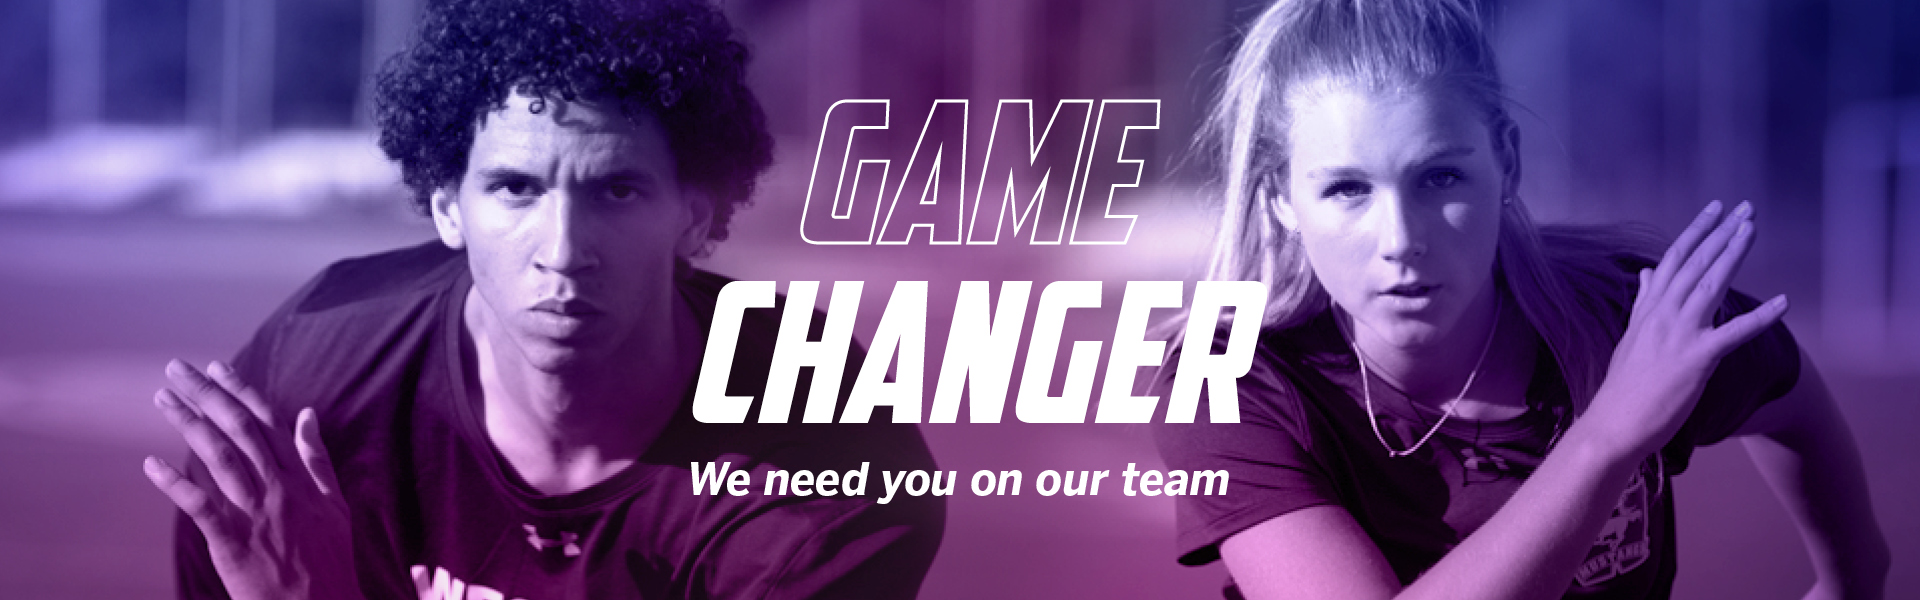 2 Students Athletes - Game Changer - We need you on our team